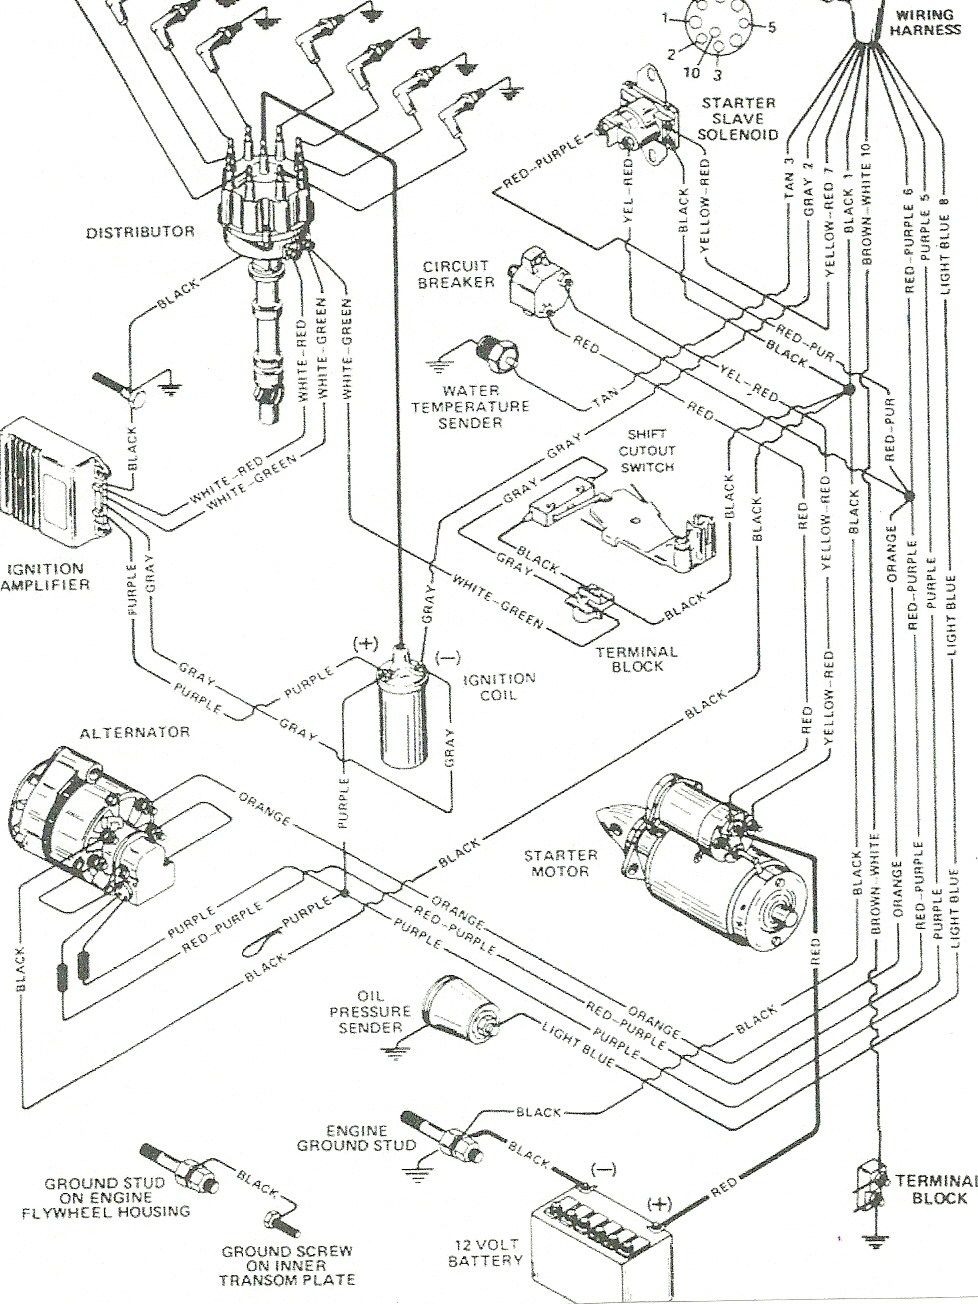 mercruiser 30 wiring diagram wiring diagram mercruiser 140 rh pinterest com mercruiser wiring diagram 5.7 mercruiser wiring diagram 1987